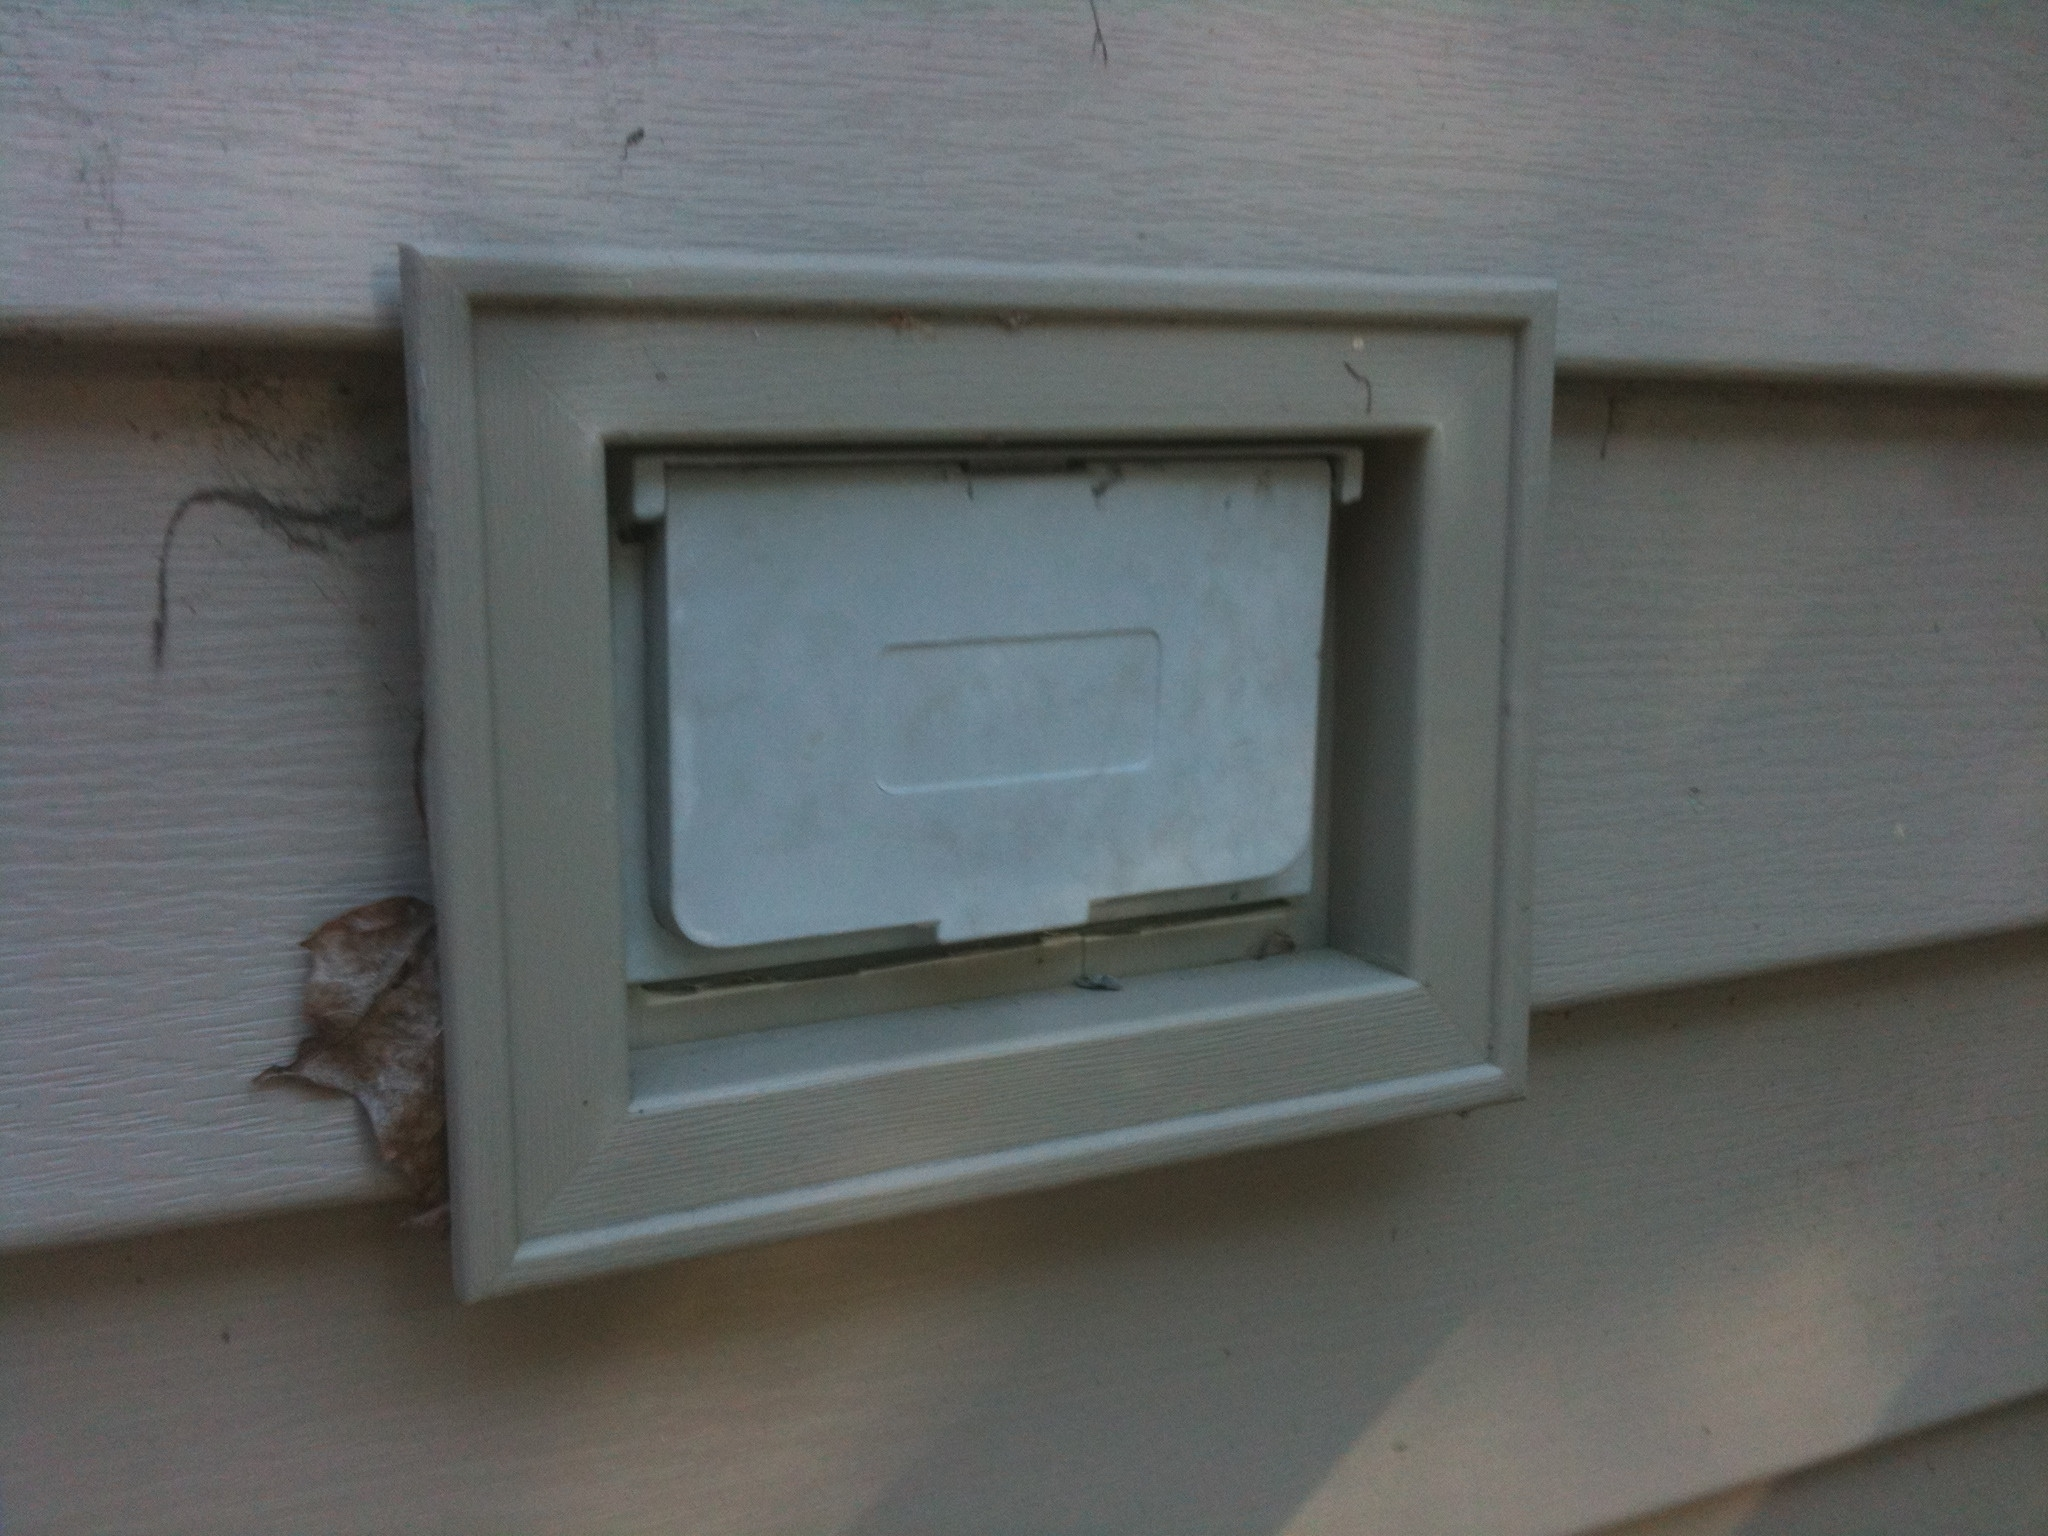 How Do I Install An Outdoor Receptacle Box On Vinyl Siding? – Home For Favorite Hanging Outdoor Lights On Vinyl Siding (View 11 of 20)